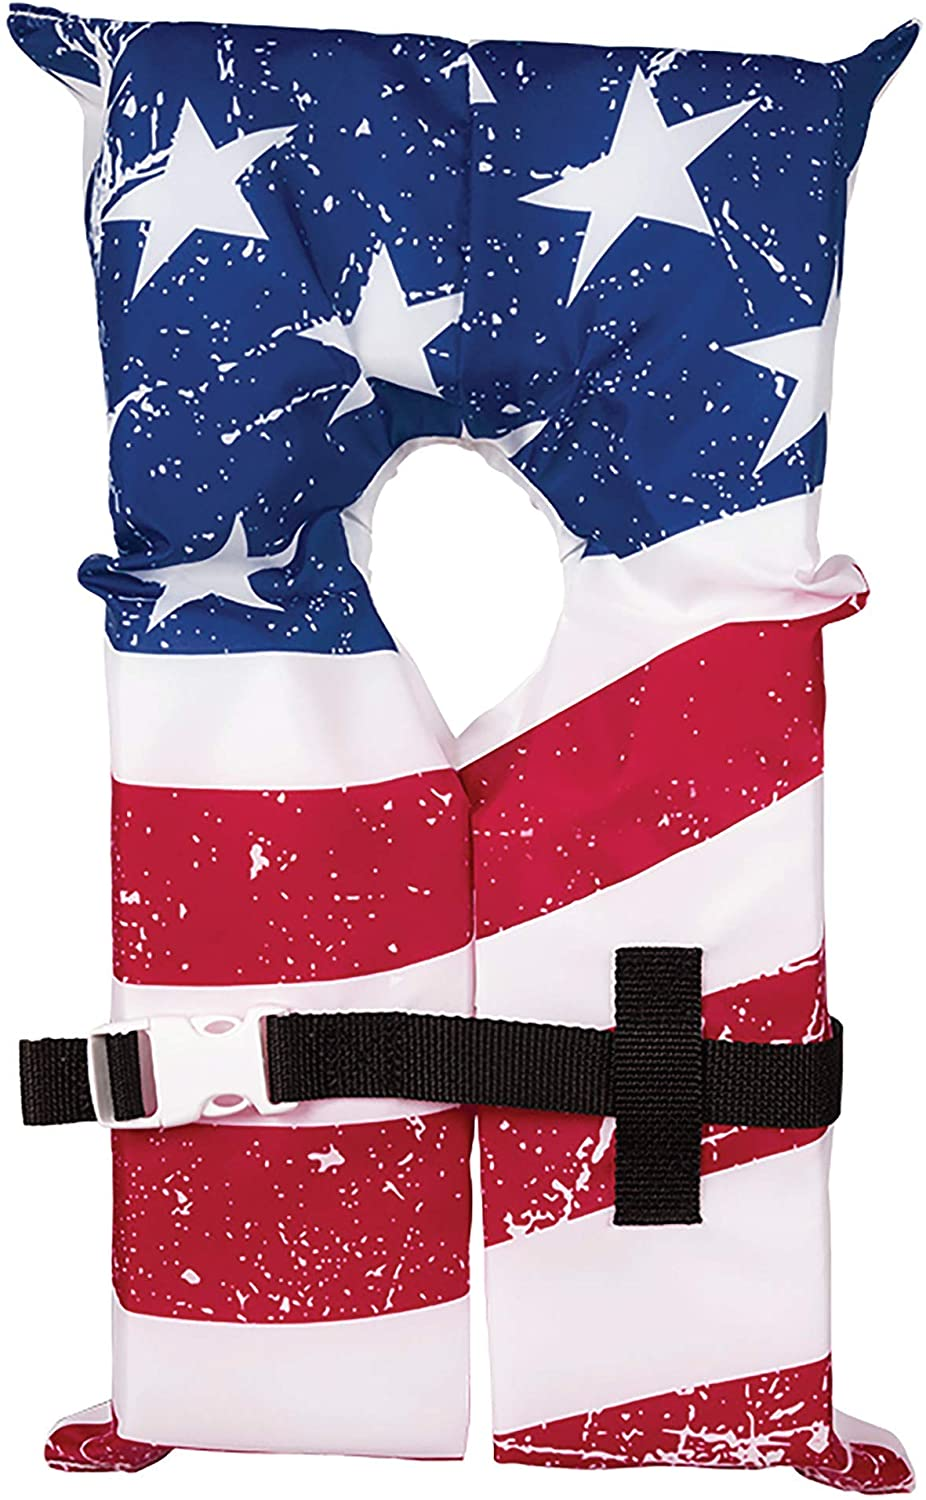 Airhead Adult Universal Type At the price Phoenix Mall 2 Life USCG Jacket Approved